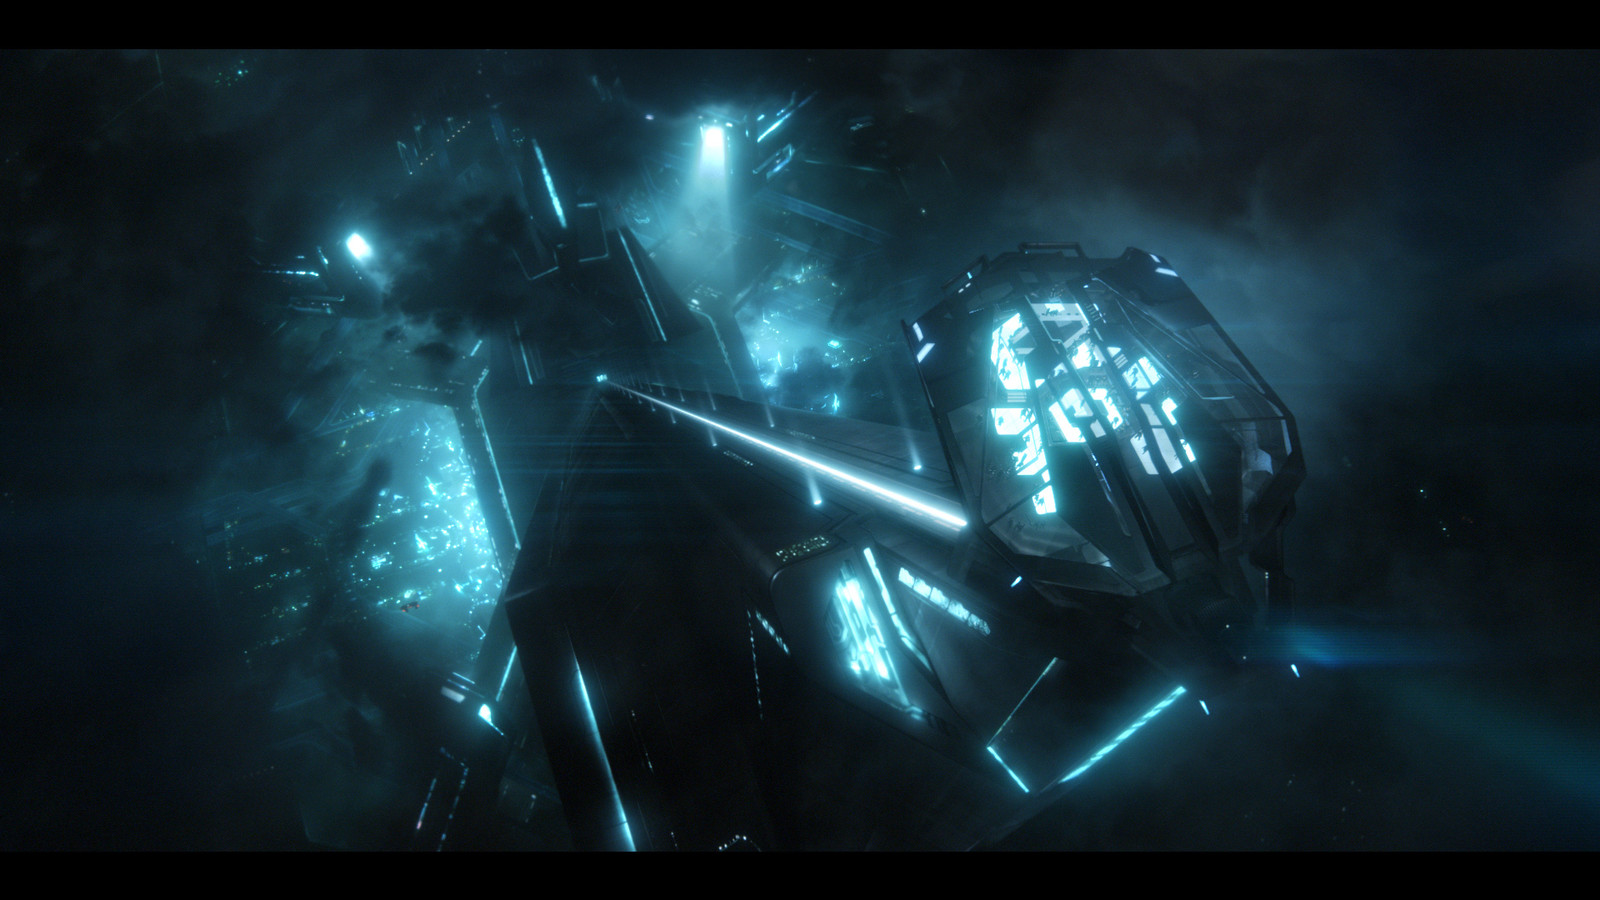 Tron Digital matte painting